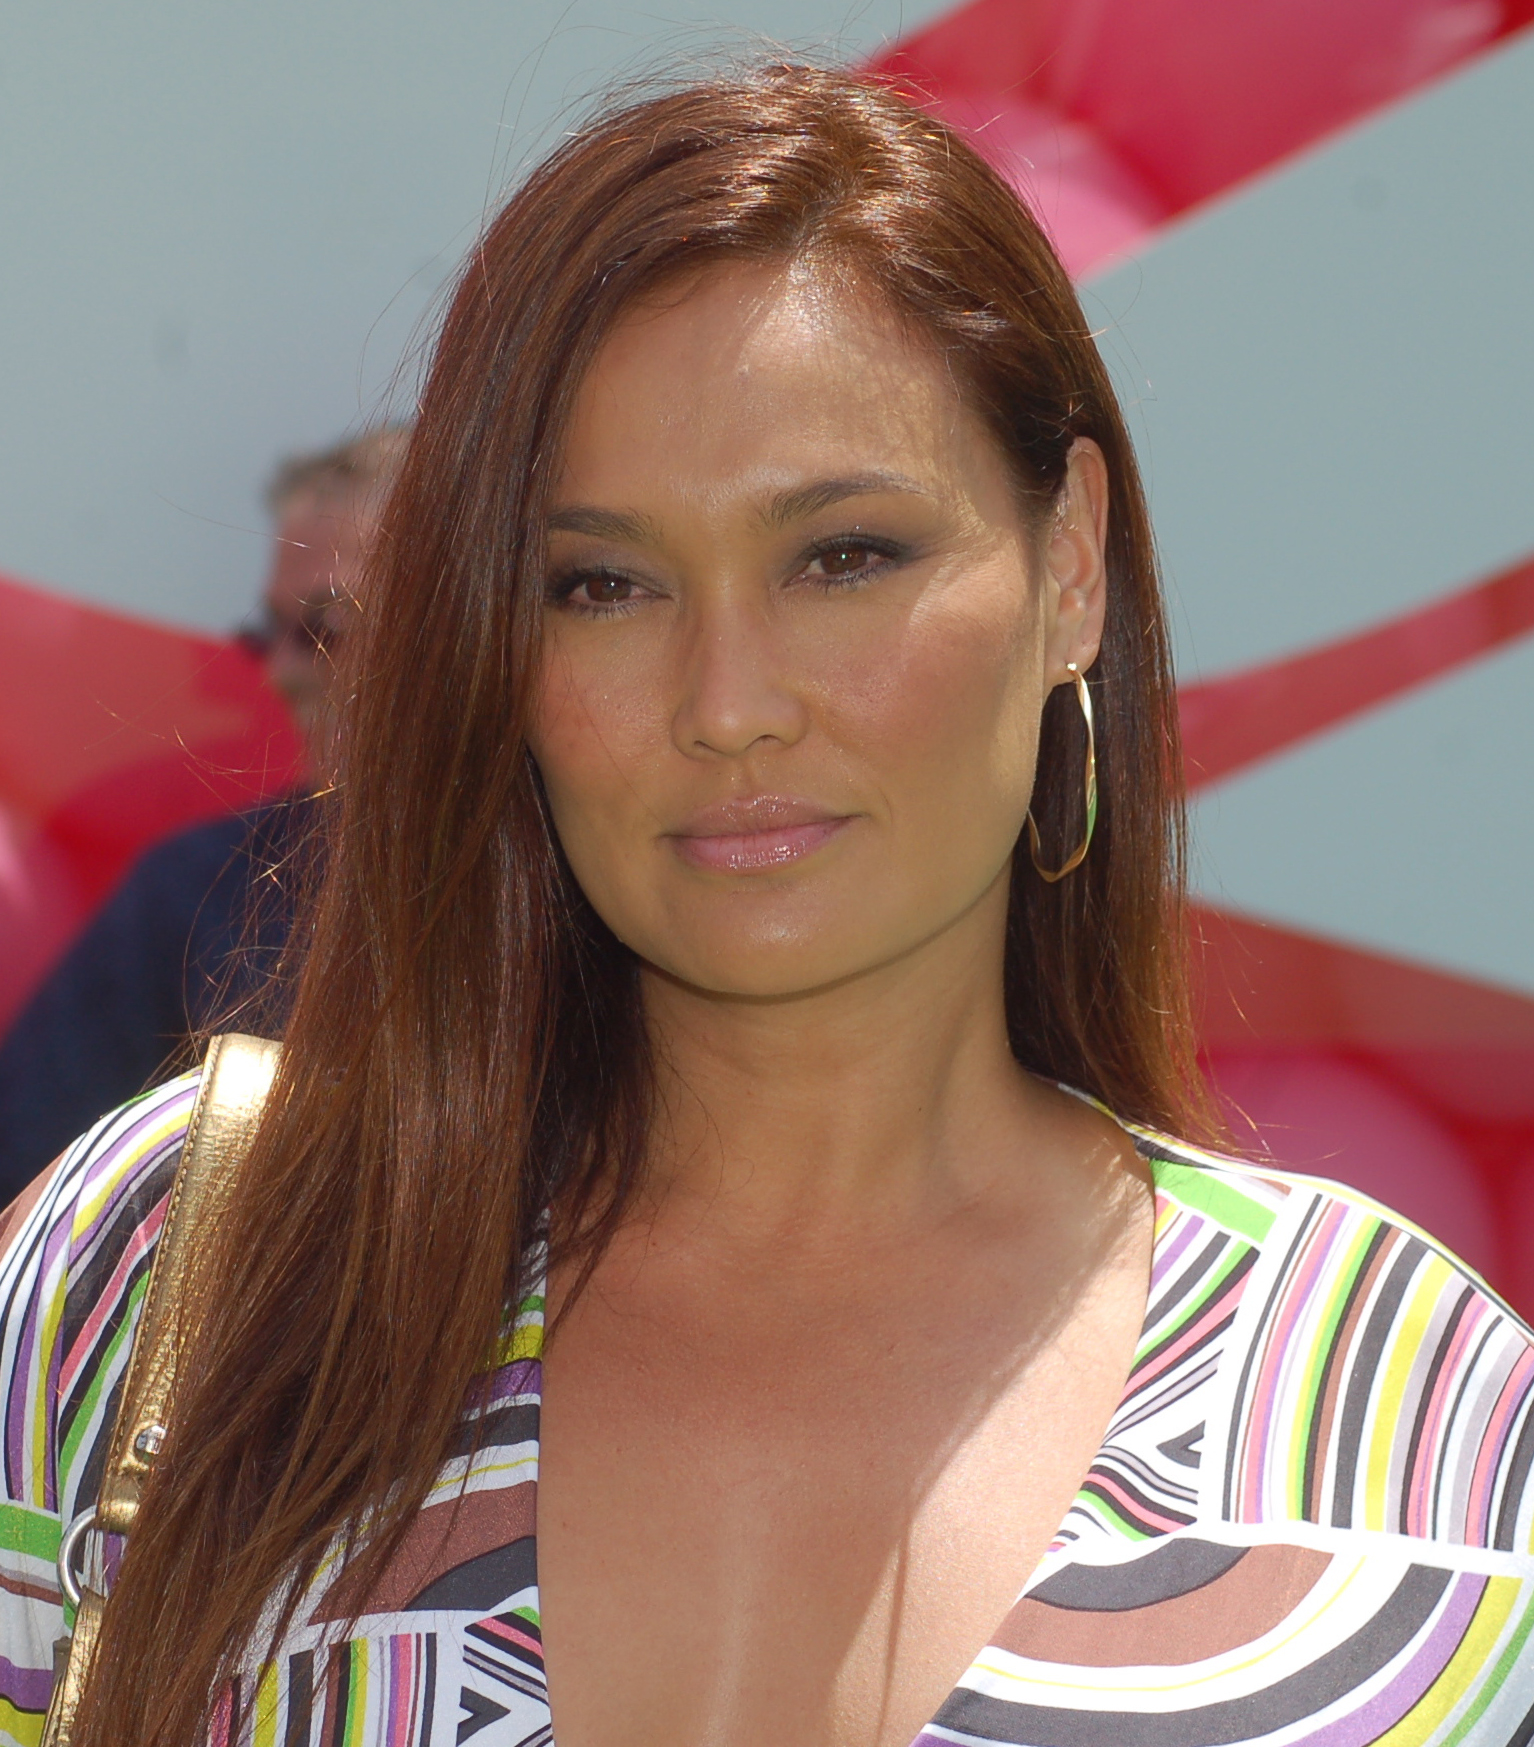 Tia Carrere earned a  million dollar salary, leaving the net worth at 3 million in 2017